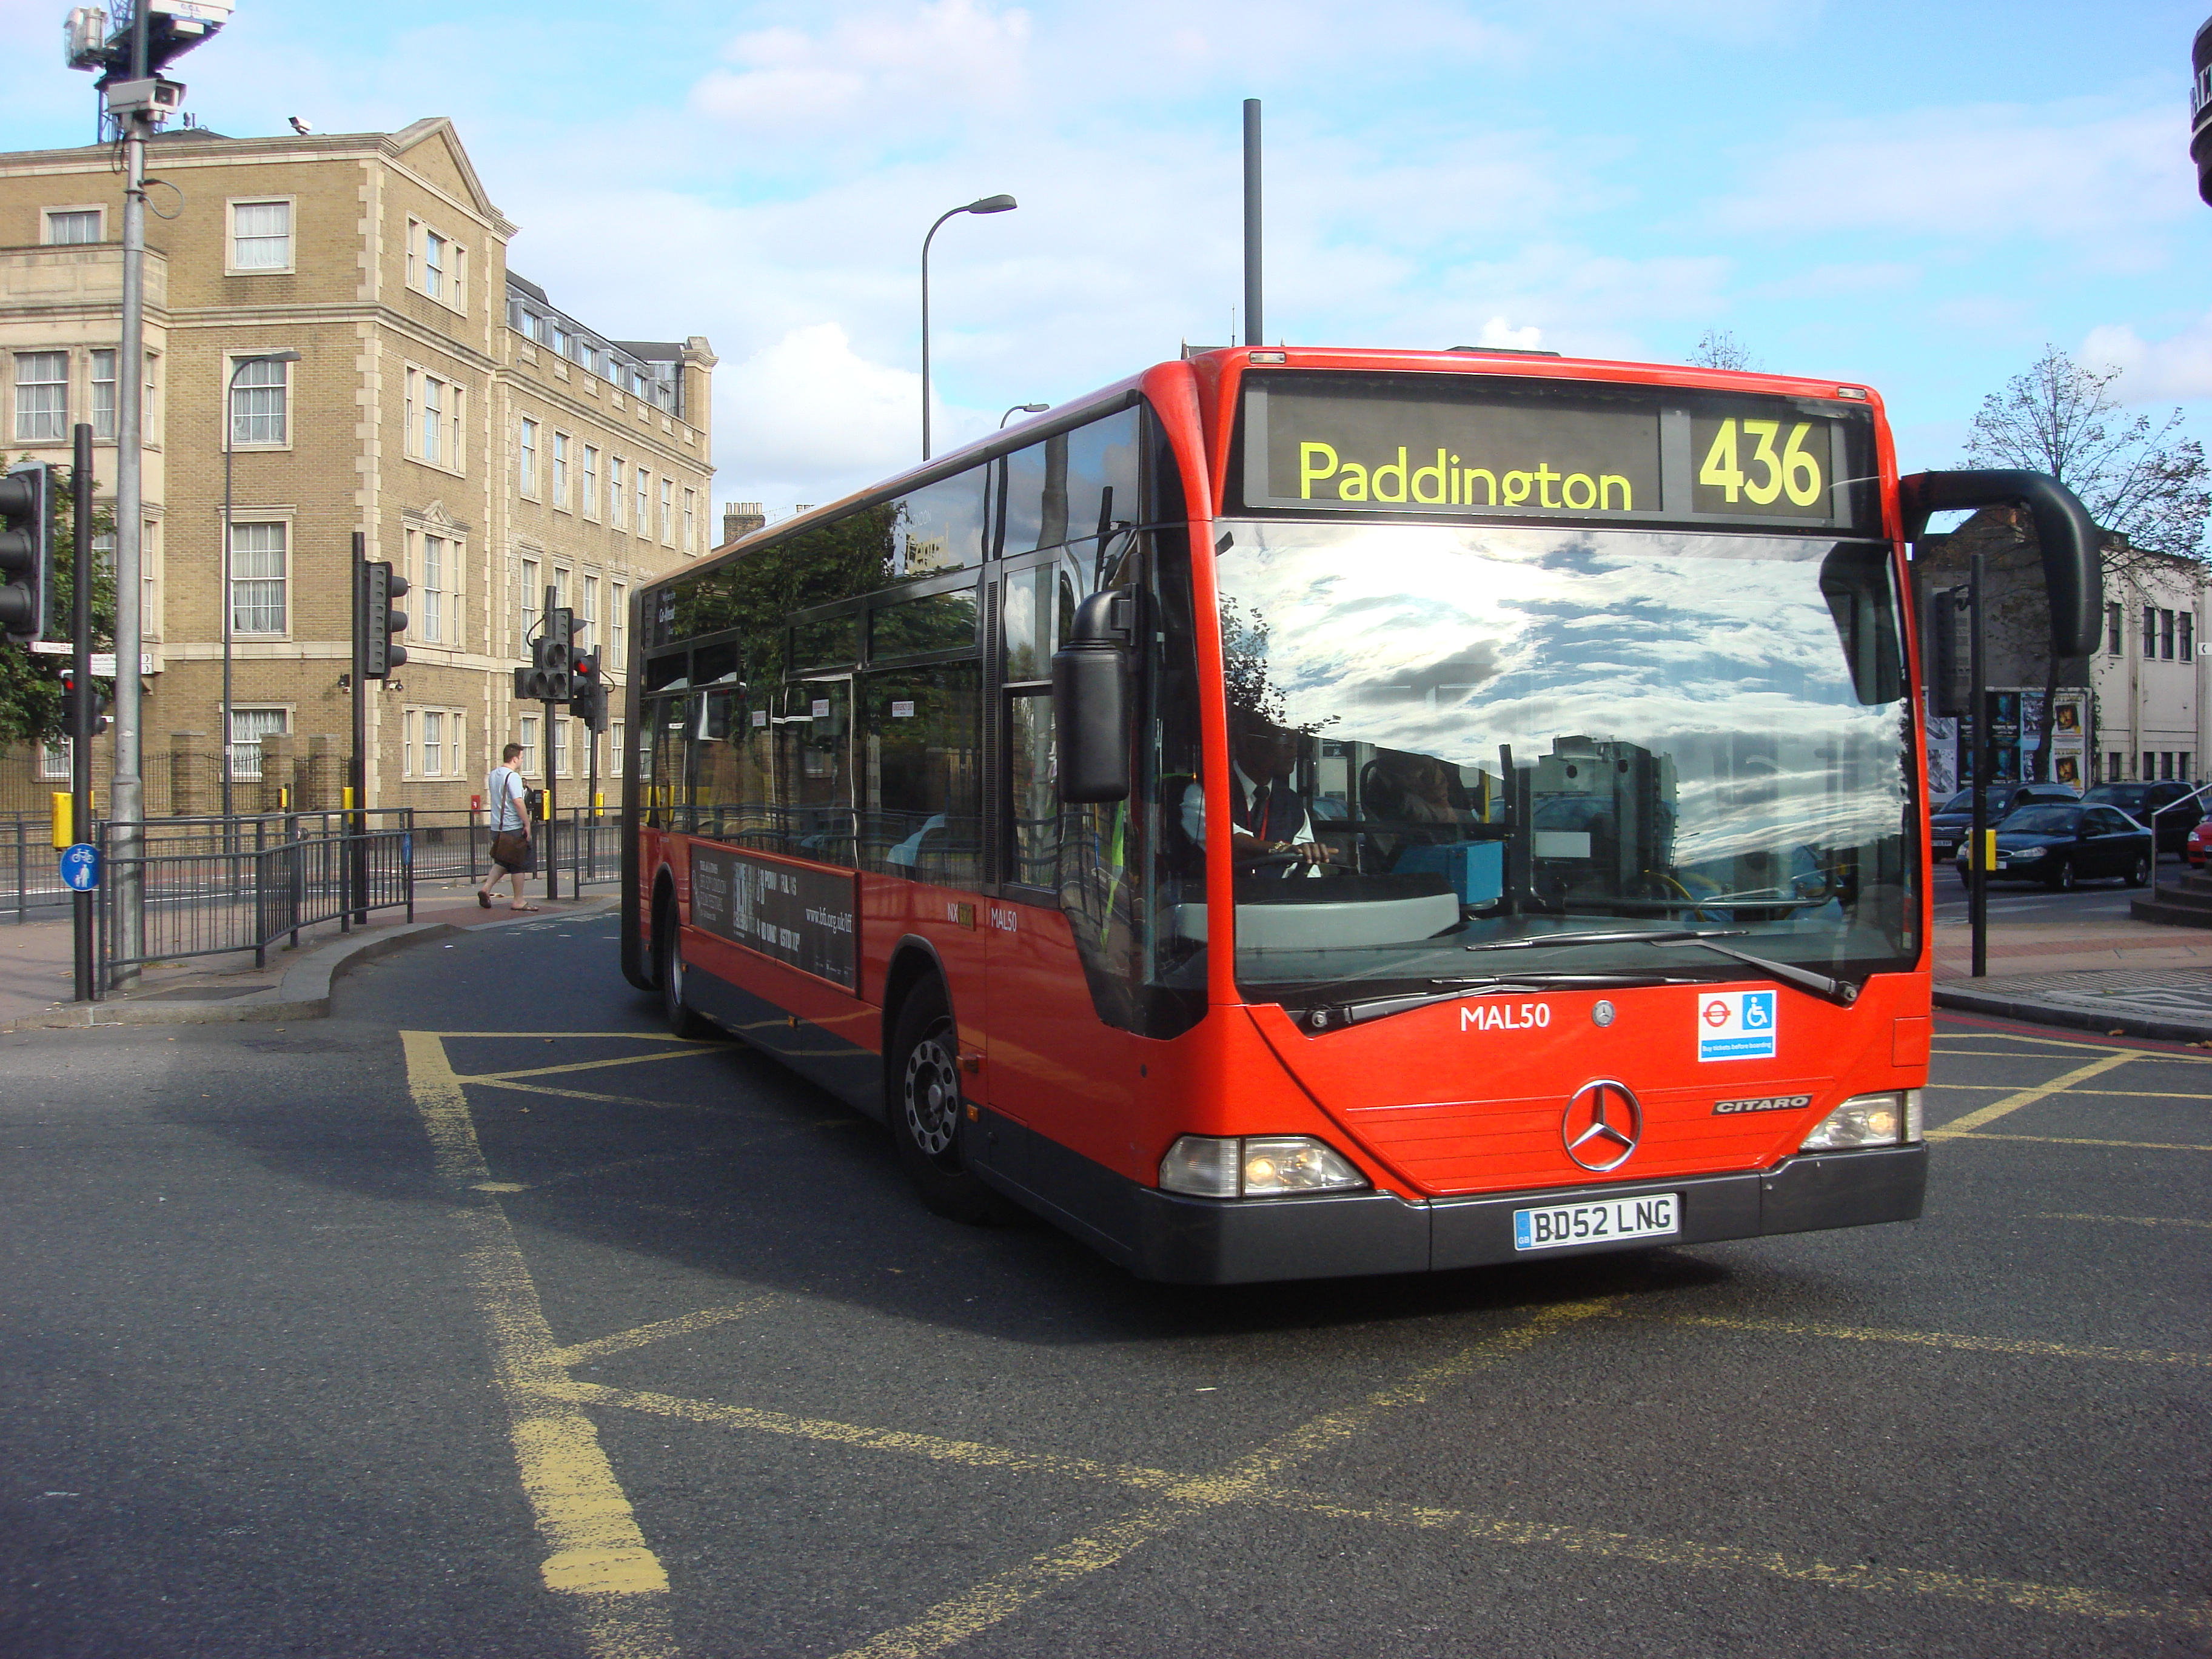 [GAME] Count with pictures - Page 9 London_Bus_route_436